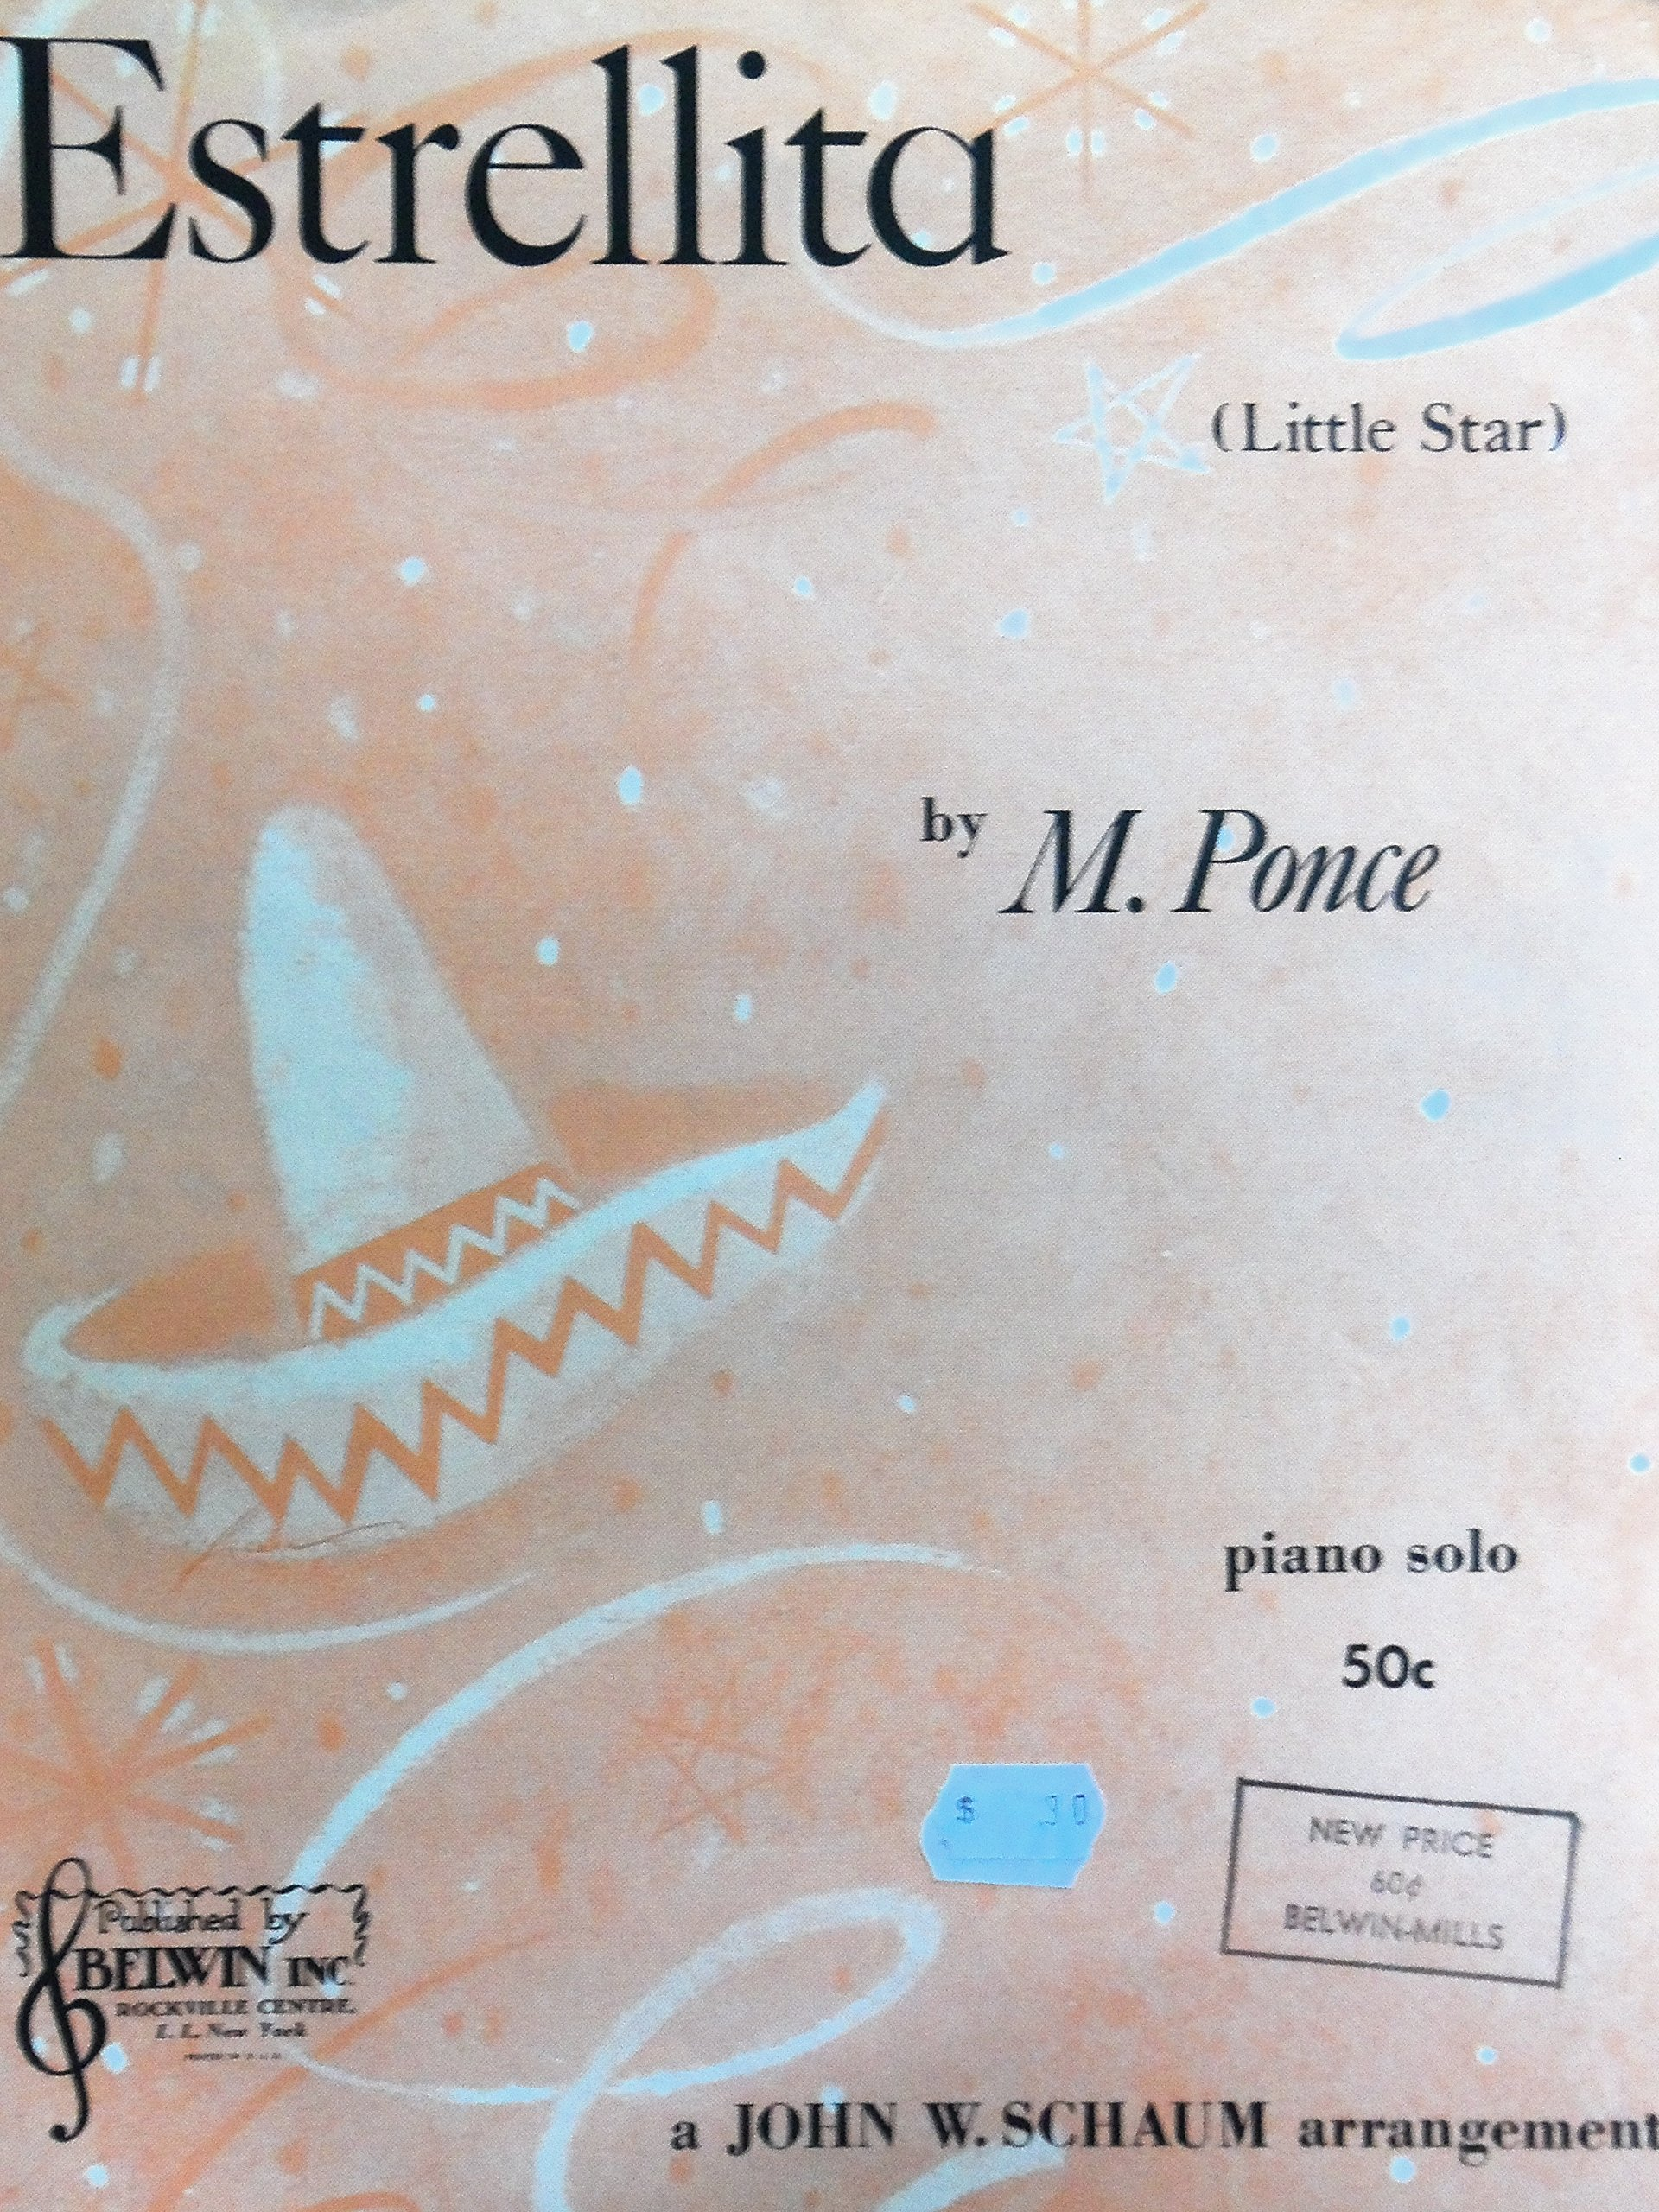 Estrellita Little Star Piano Solo M Ponce Arranged By John W Schaum Amazon Com Books